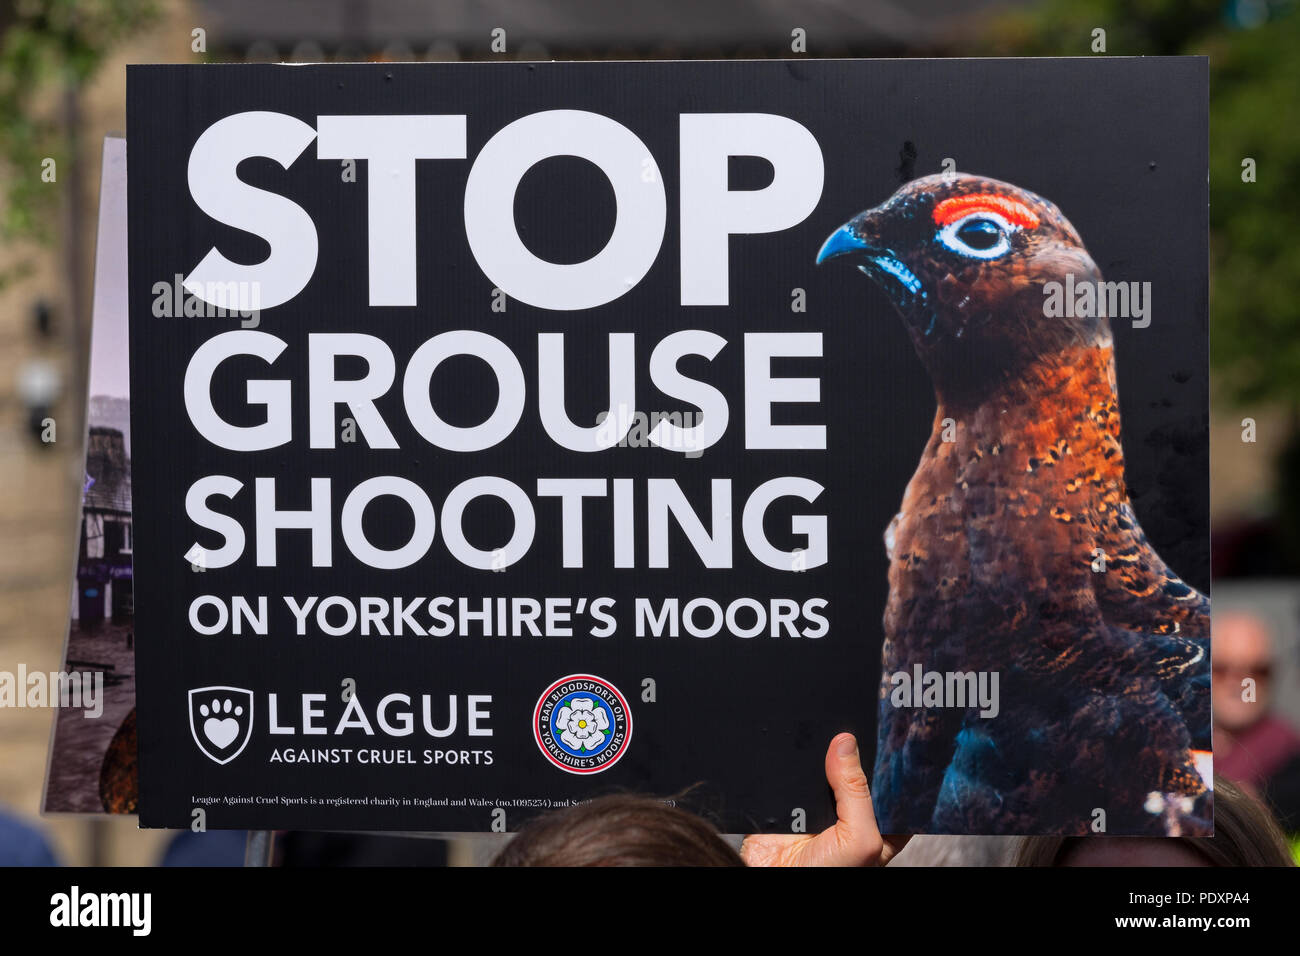 Hebden Bridge, UK. 11th August 2018. Rally to ban grouse shooting held in Hebden BridgeÕs St GeorgeÕs Square. The nearby uplands are let out by Yorkshire Water to grouse shooters who are accused of decimating the wildlife for sport by trap and gun, burning large sections of heather to increase game bird numbers and decimating blanket bog and contributing to flooding in the valley. The protesters urged Yorkshire Water to stop leasing land above the town for grouse shooting. The protest was organised by The League Against Cruel Sports and Ban Bloodsports on YorkshireÕs Moors. Credit: Stephen Bel Stock Photo